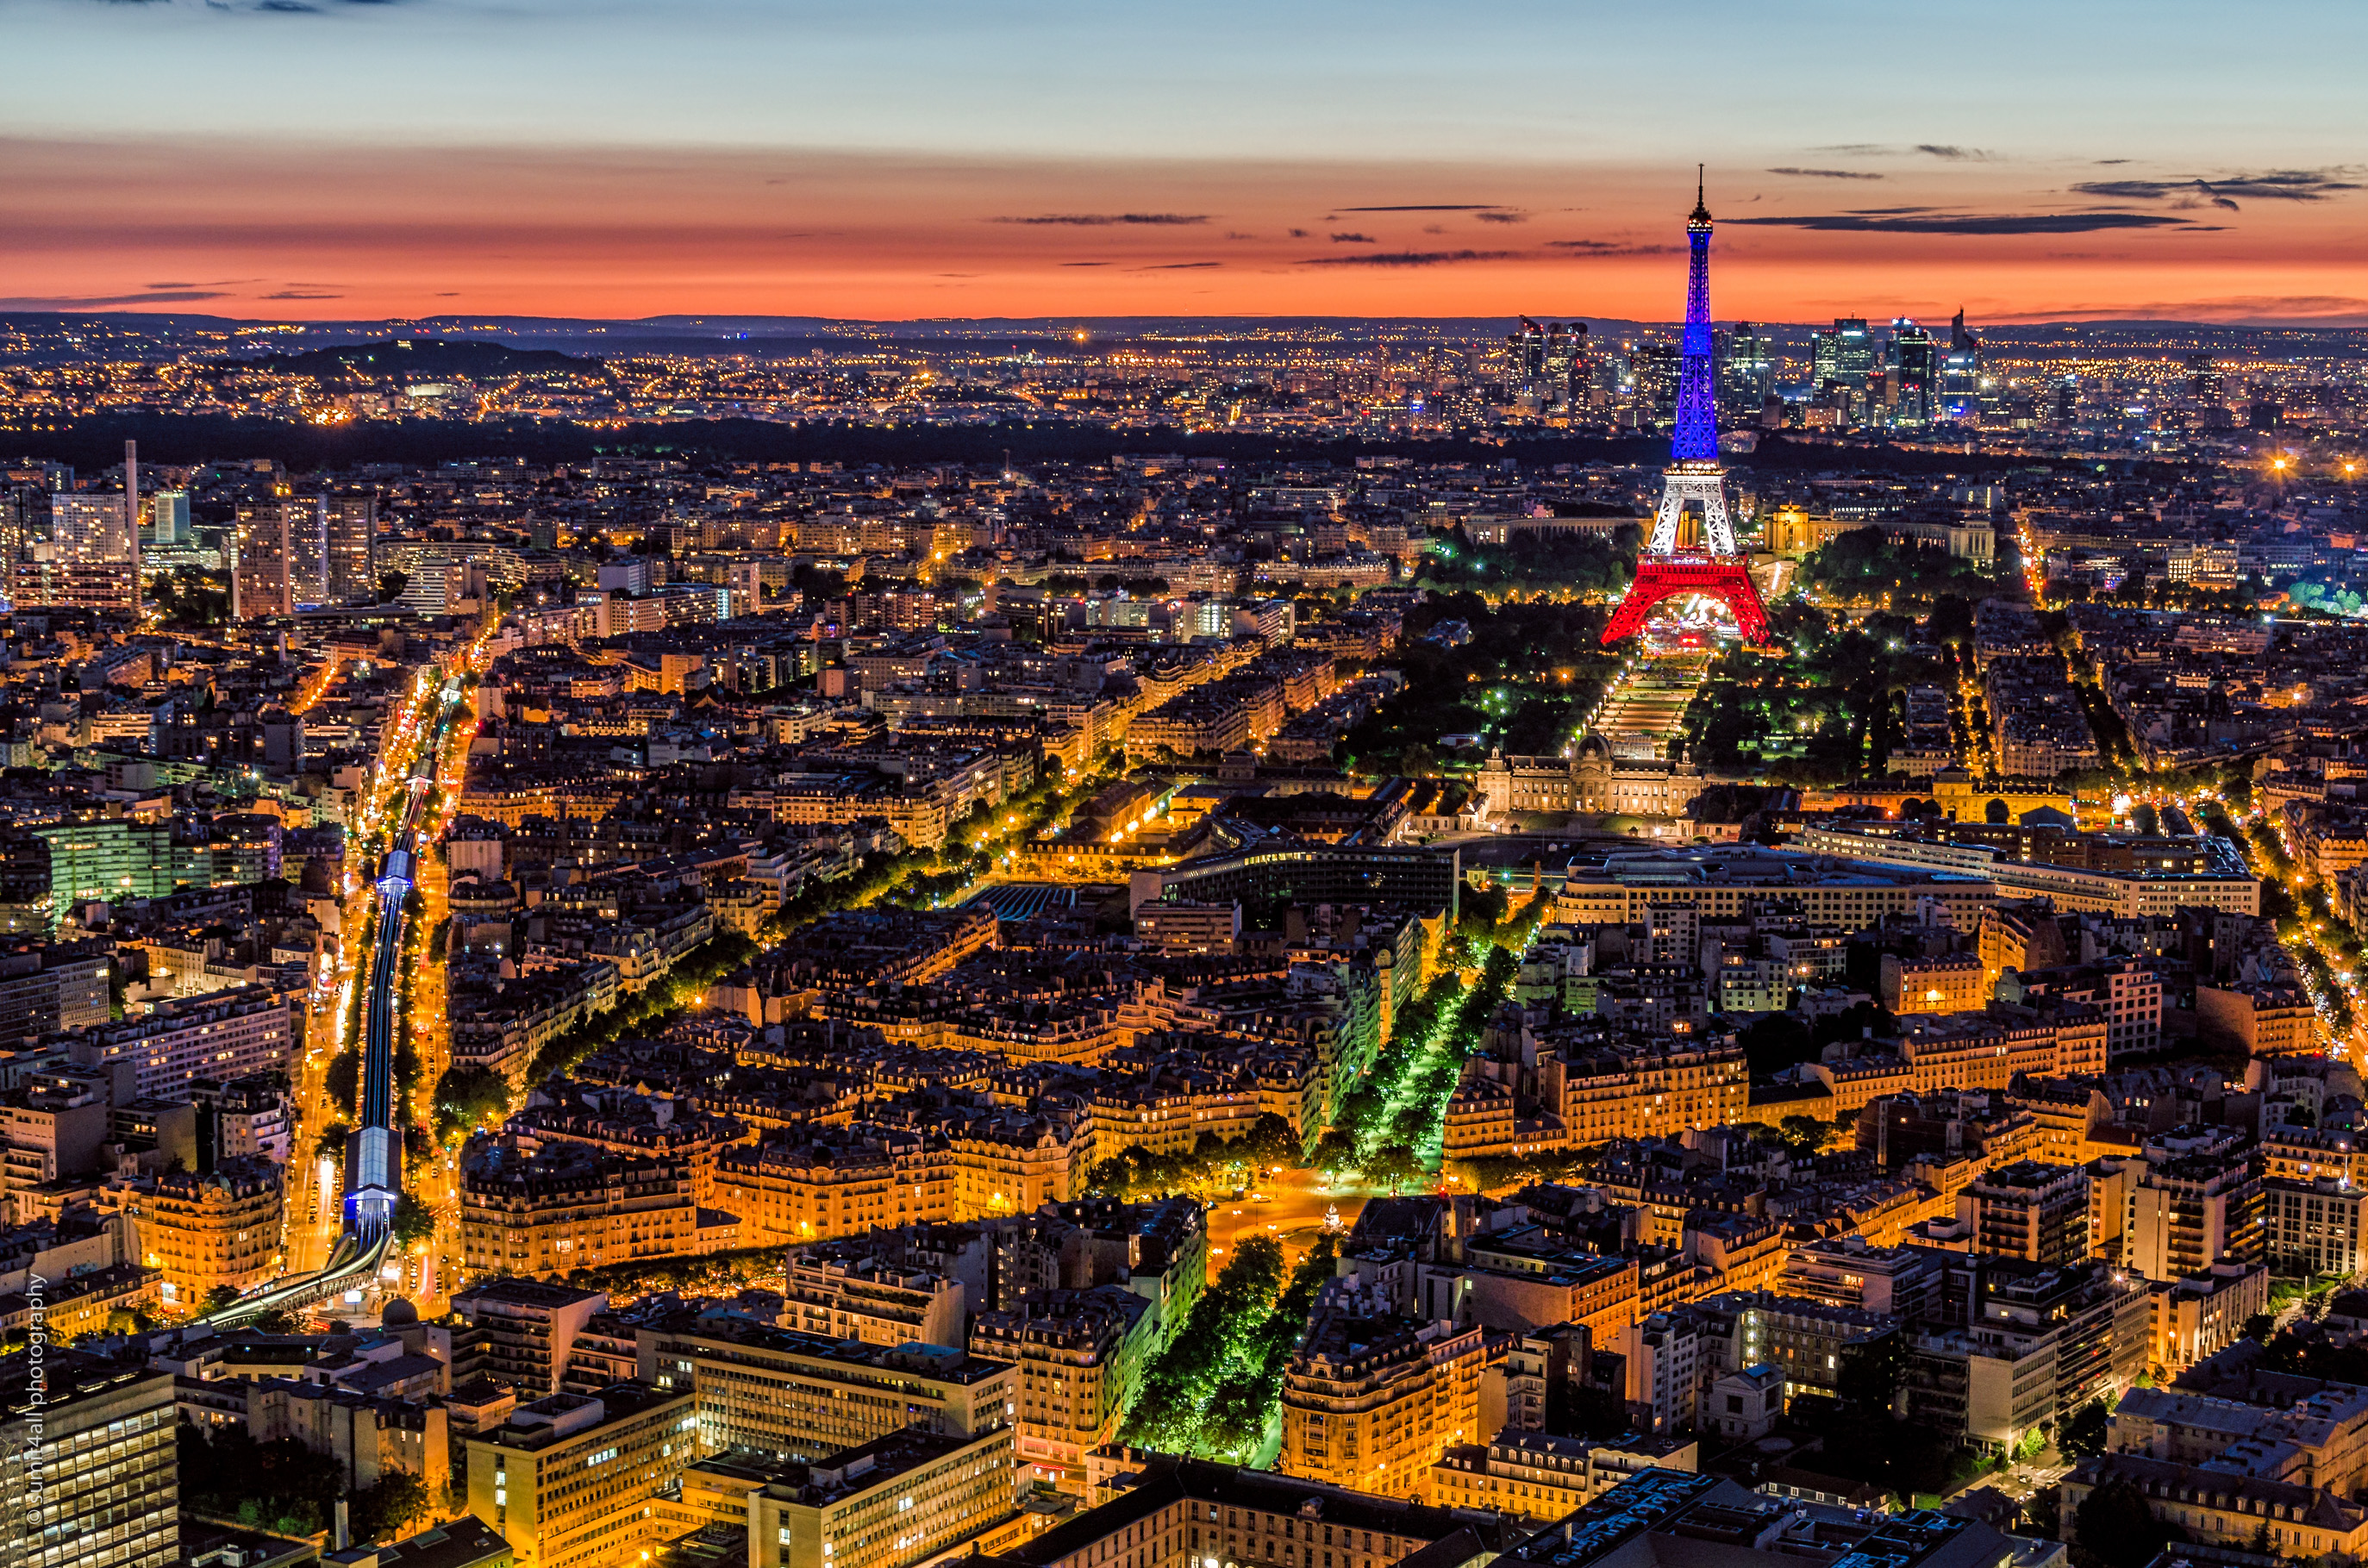 The Eiffel Tower in French Colors